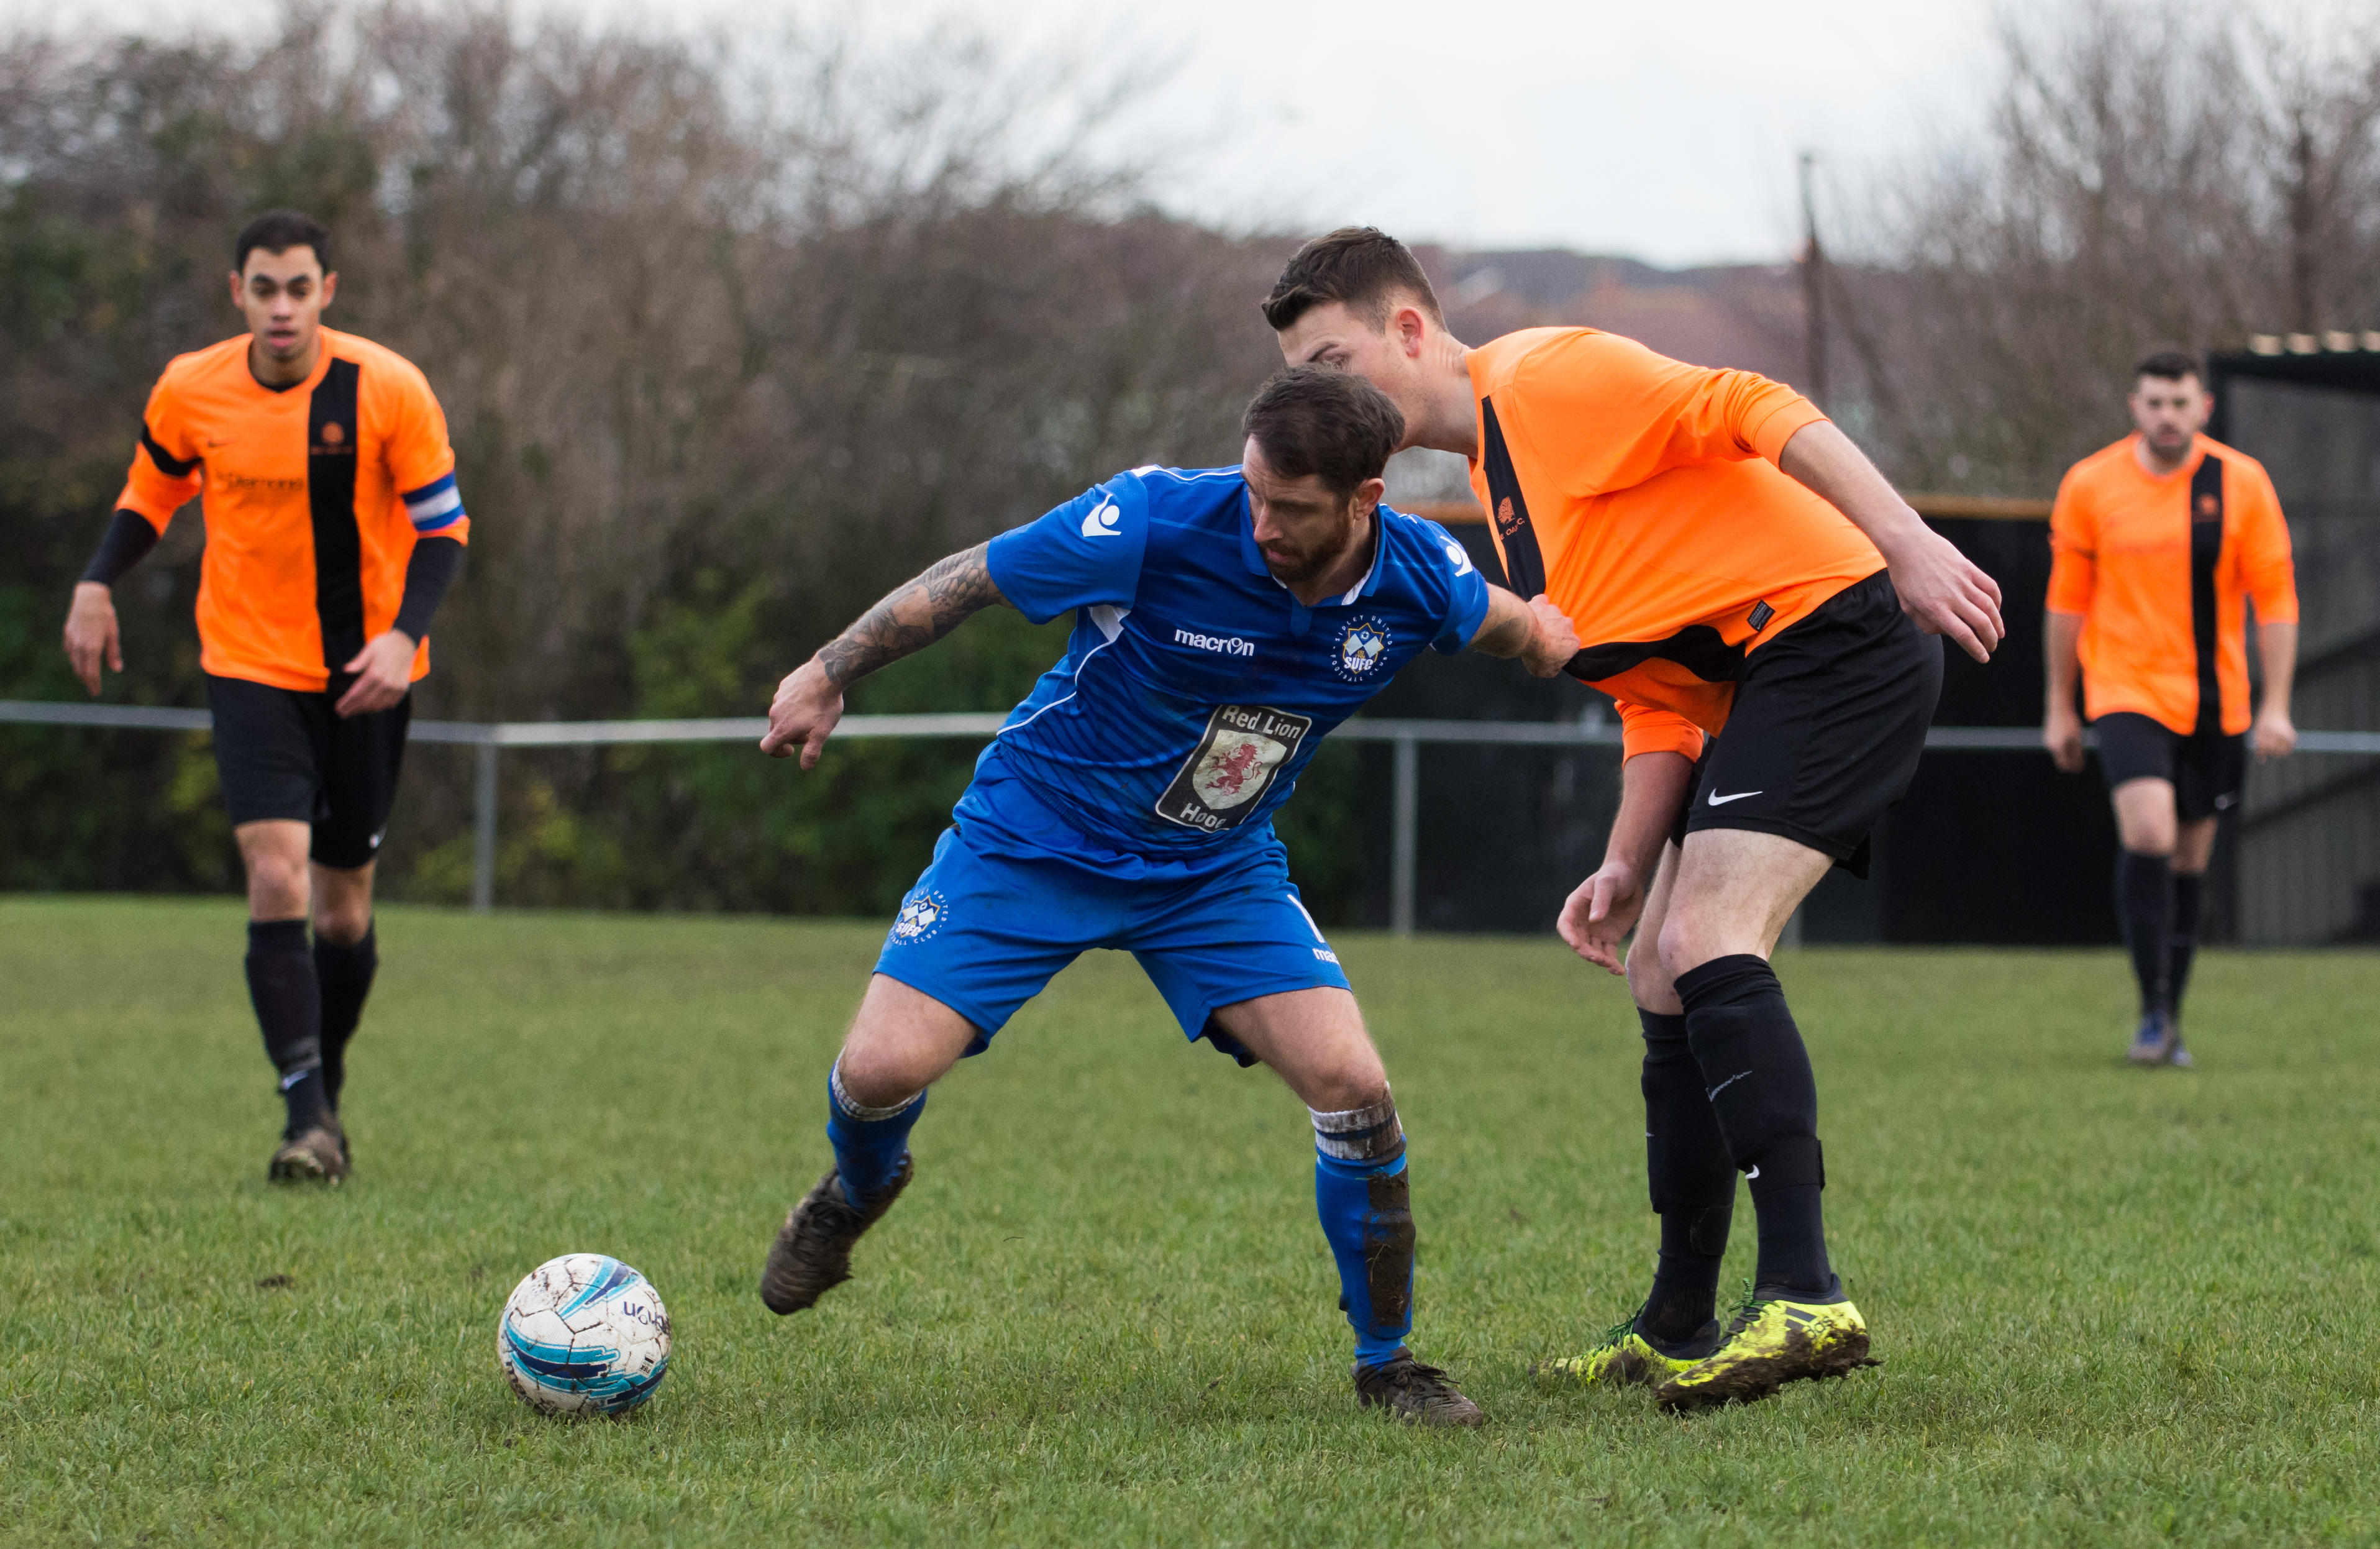 Mile Oak Res vs Sidley United 09.12.17 05